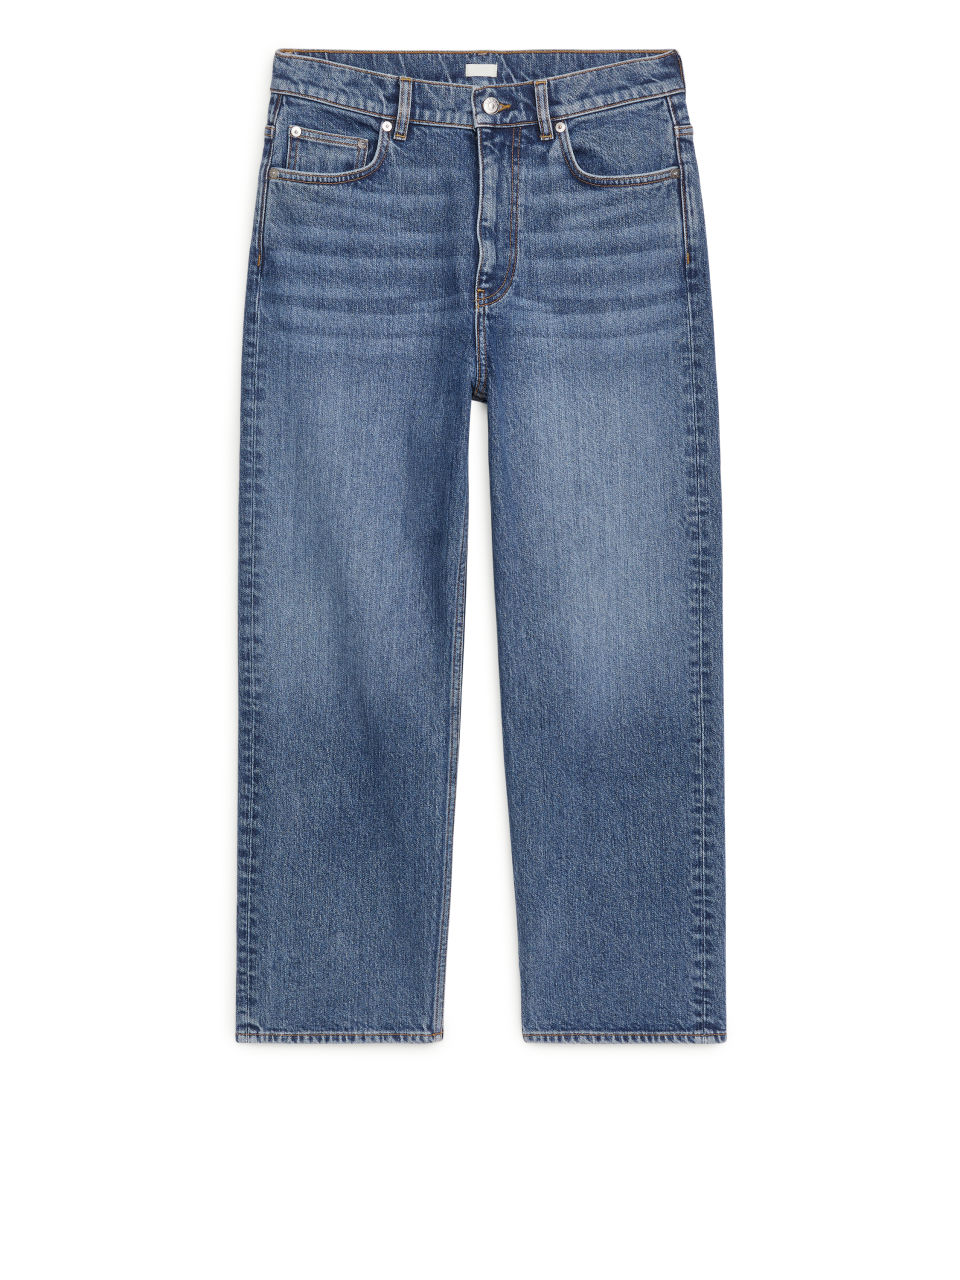 STRAIGHT CROPPED STRETCH Jeans - Blue